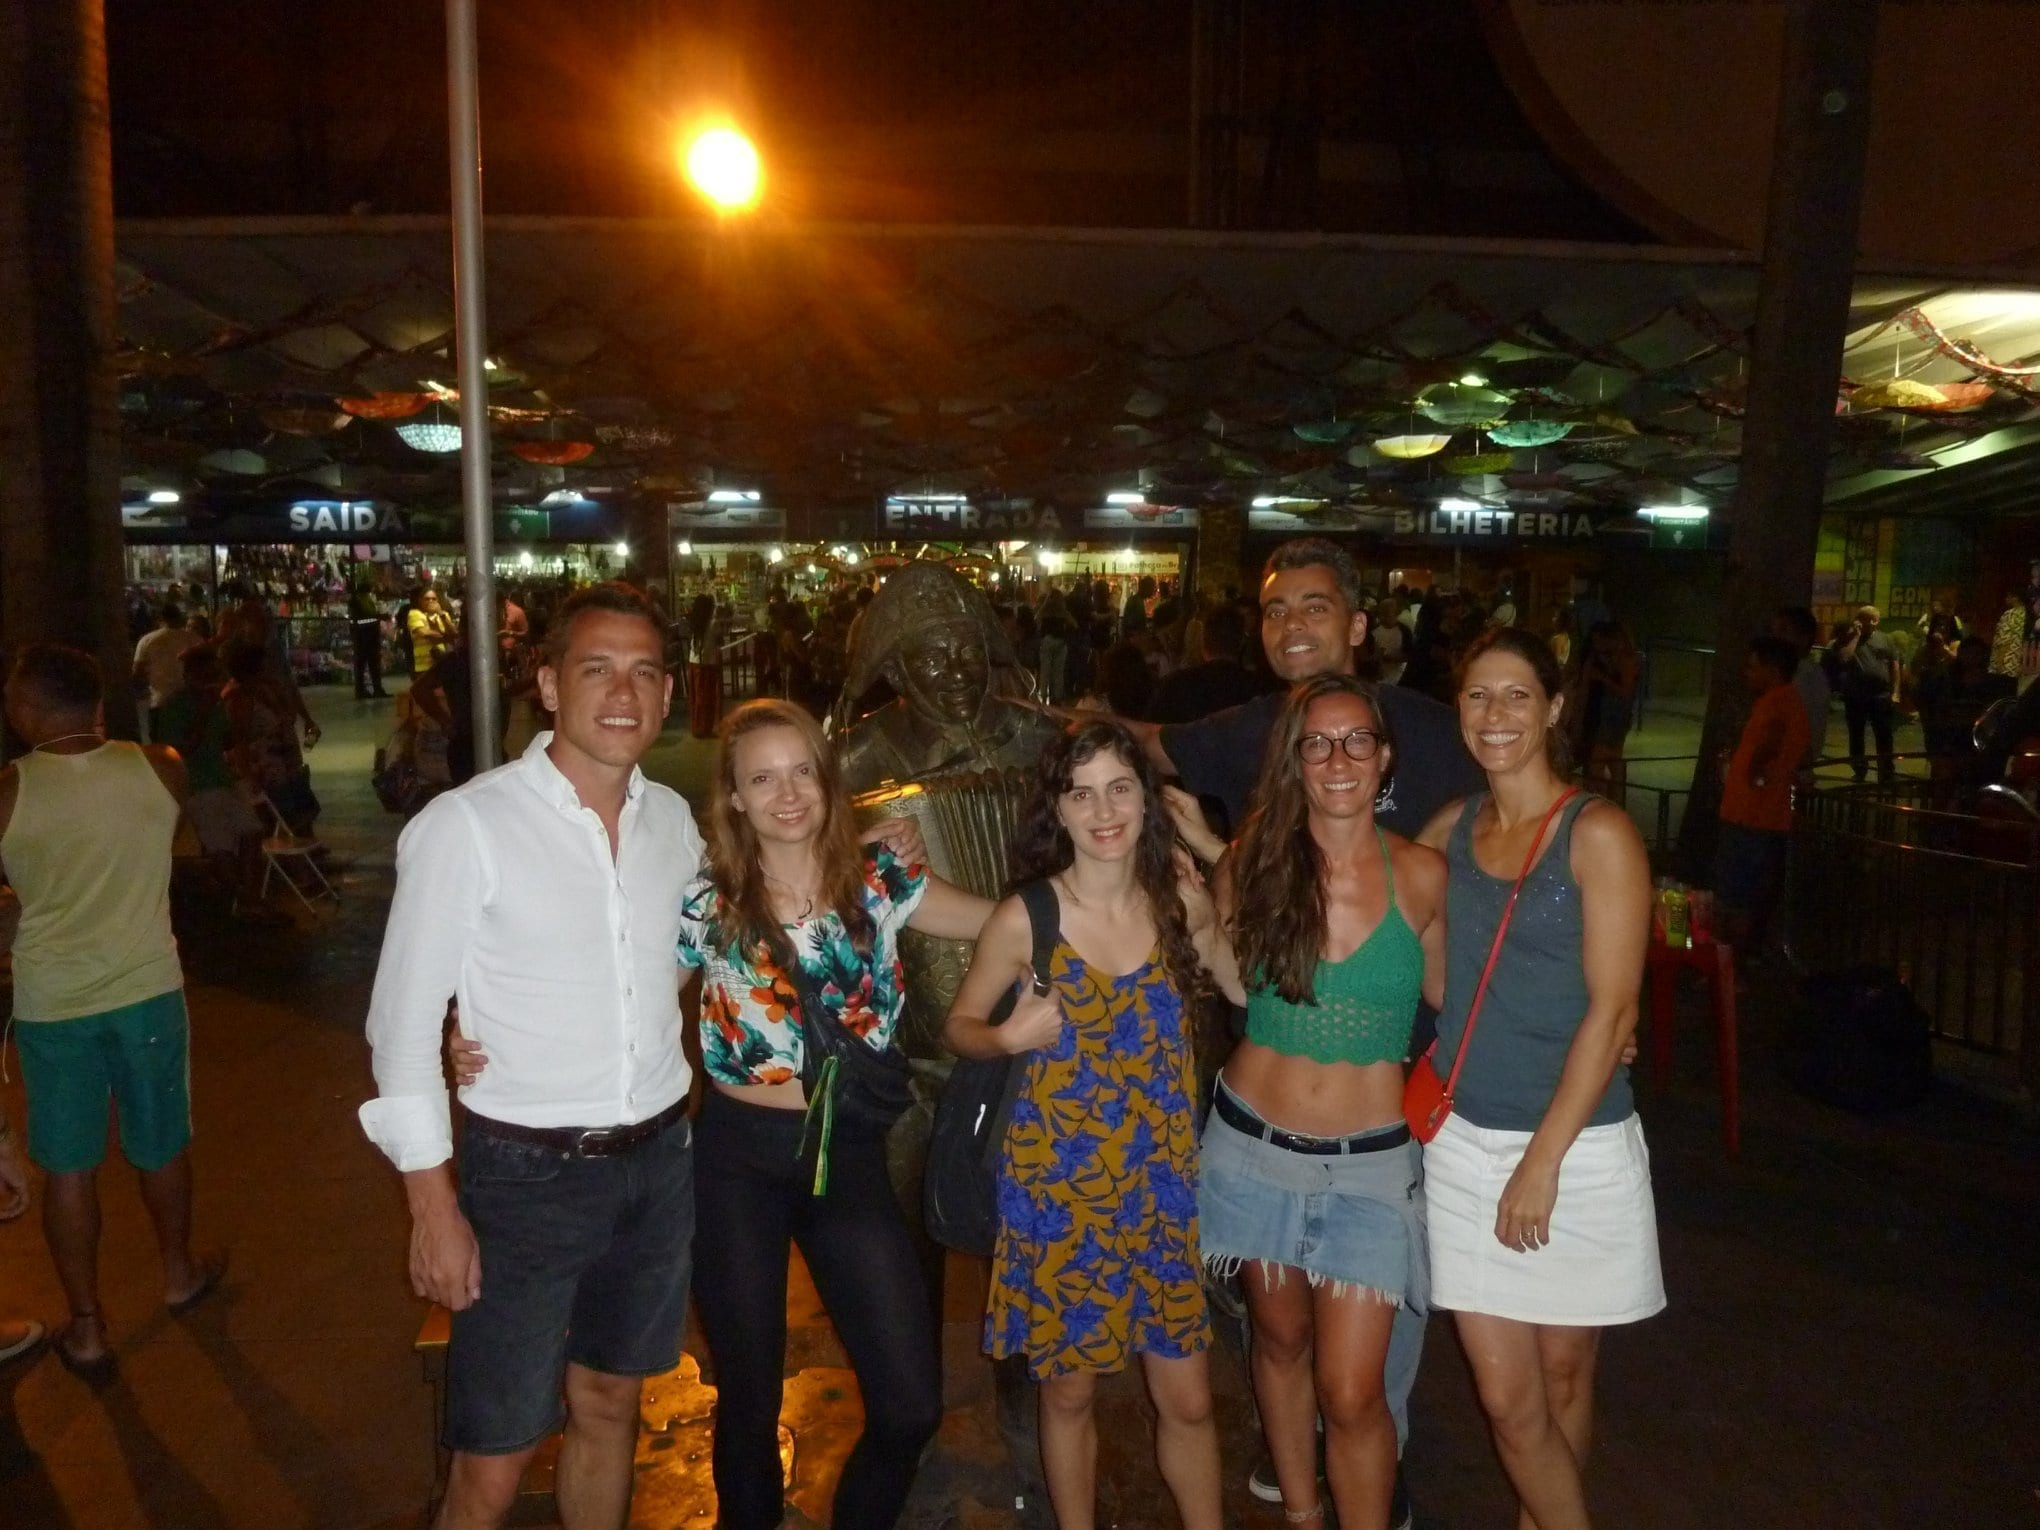 RioLIVE! São Cristóvão Fair. Statue of Luiz Gonzaga. Students at the great concert by Amado Batista. An incredible night among friends.